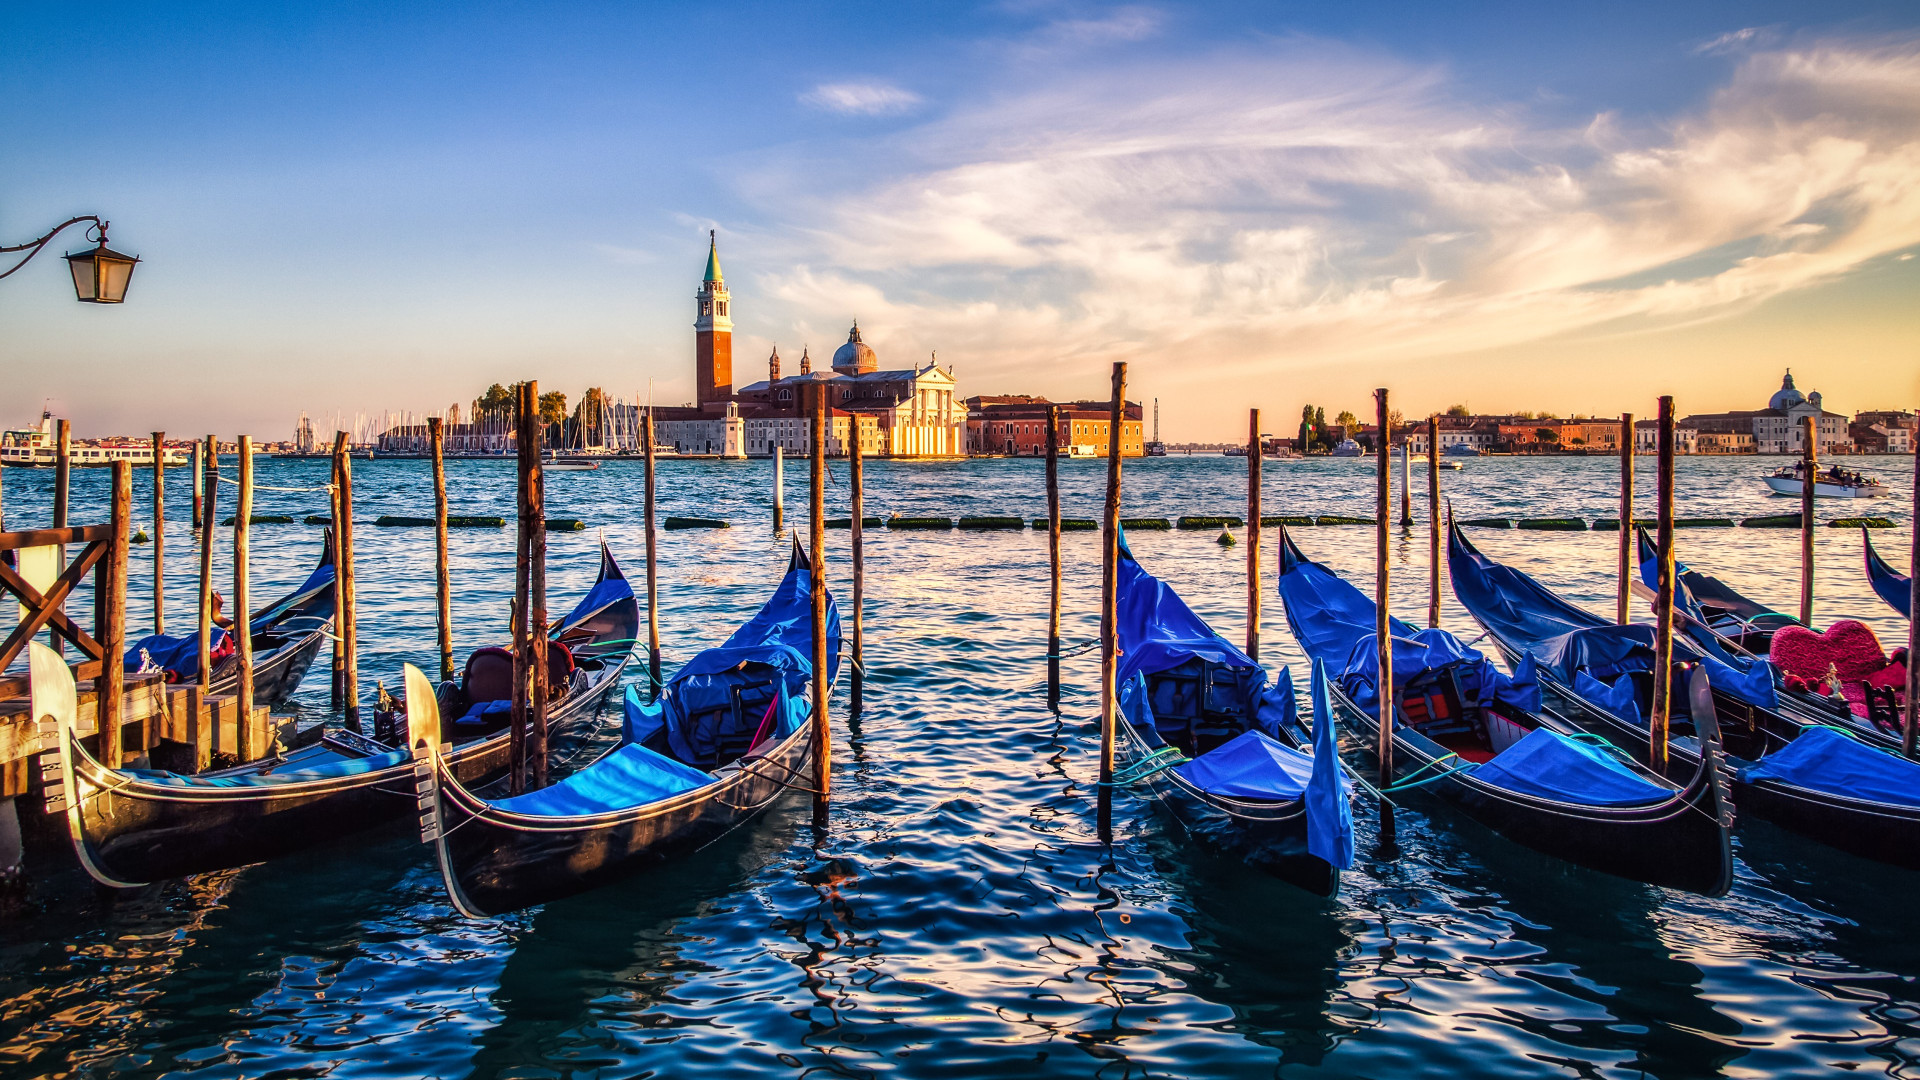 Gondolas from Venice at sunset wallpaper 1920x1080